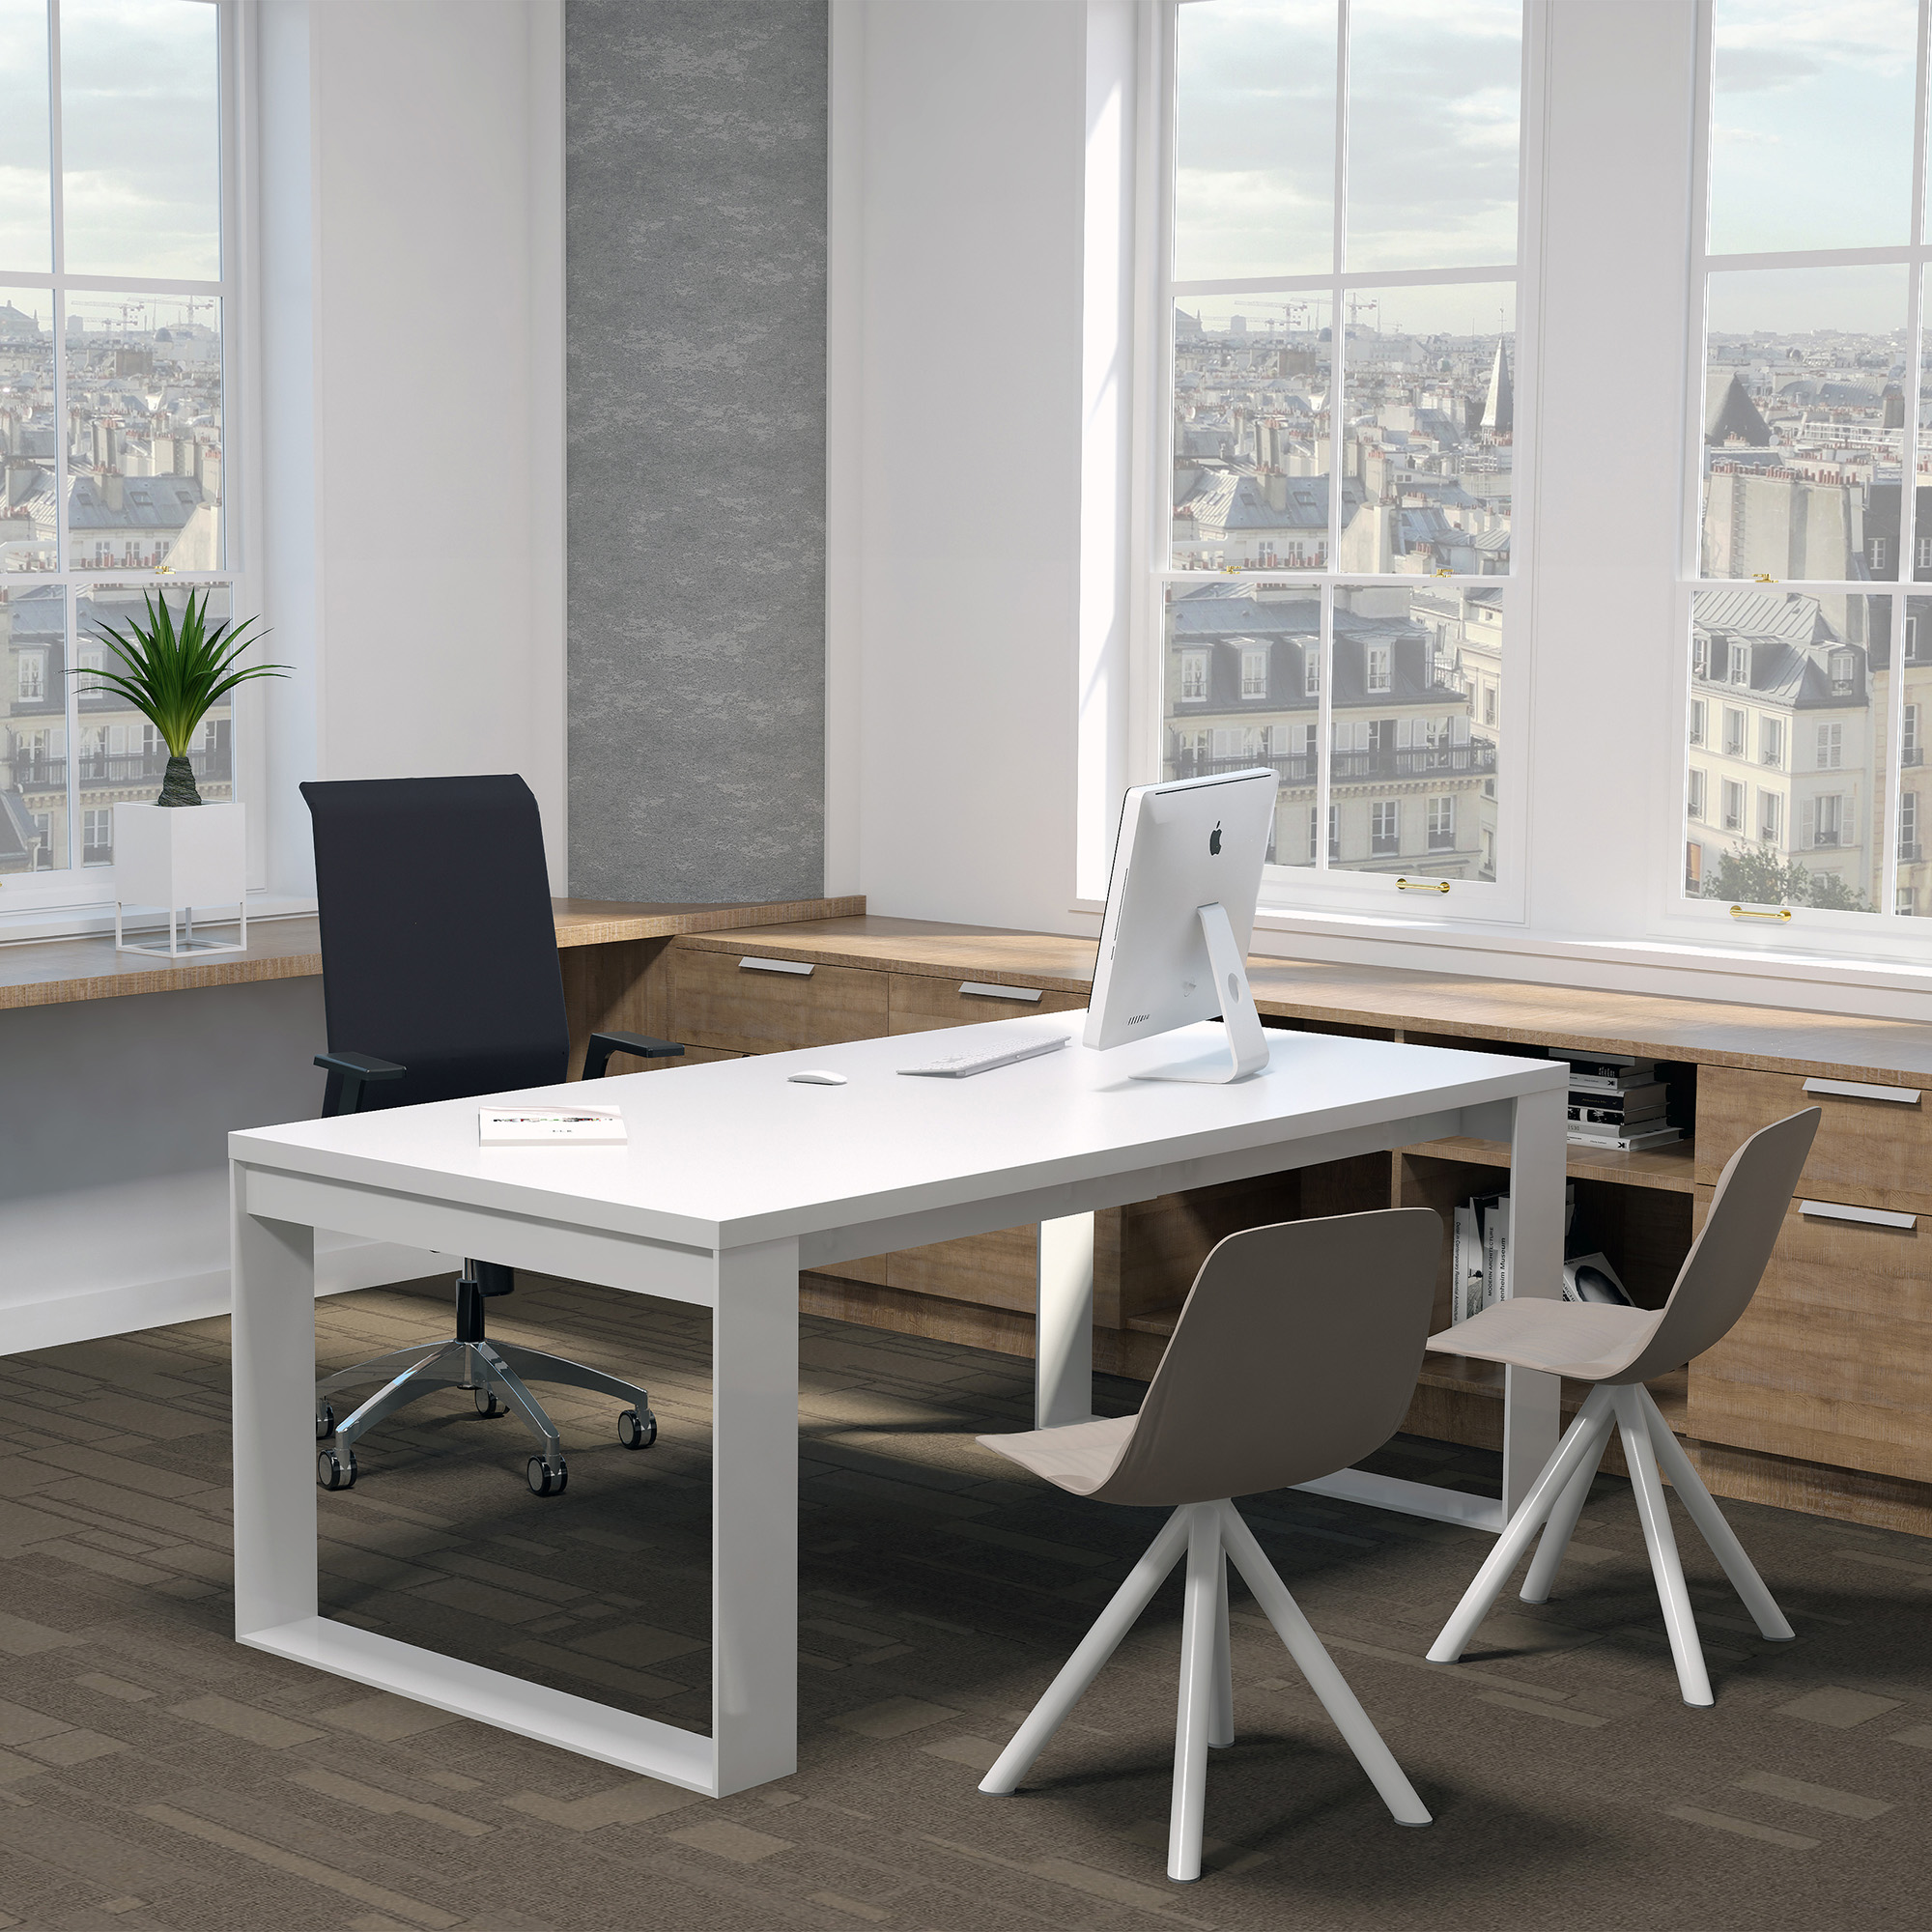 Office concept ameublement et agencement de bureau en for Bureau de direction